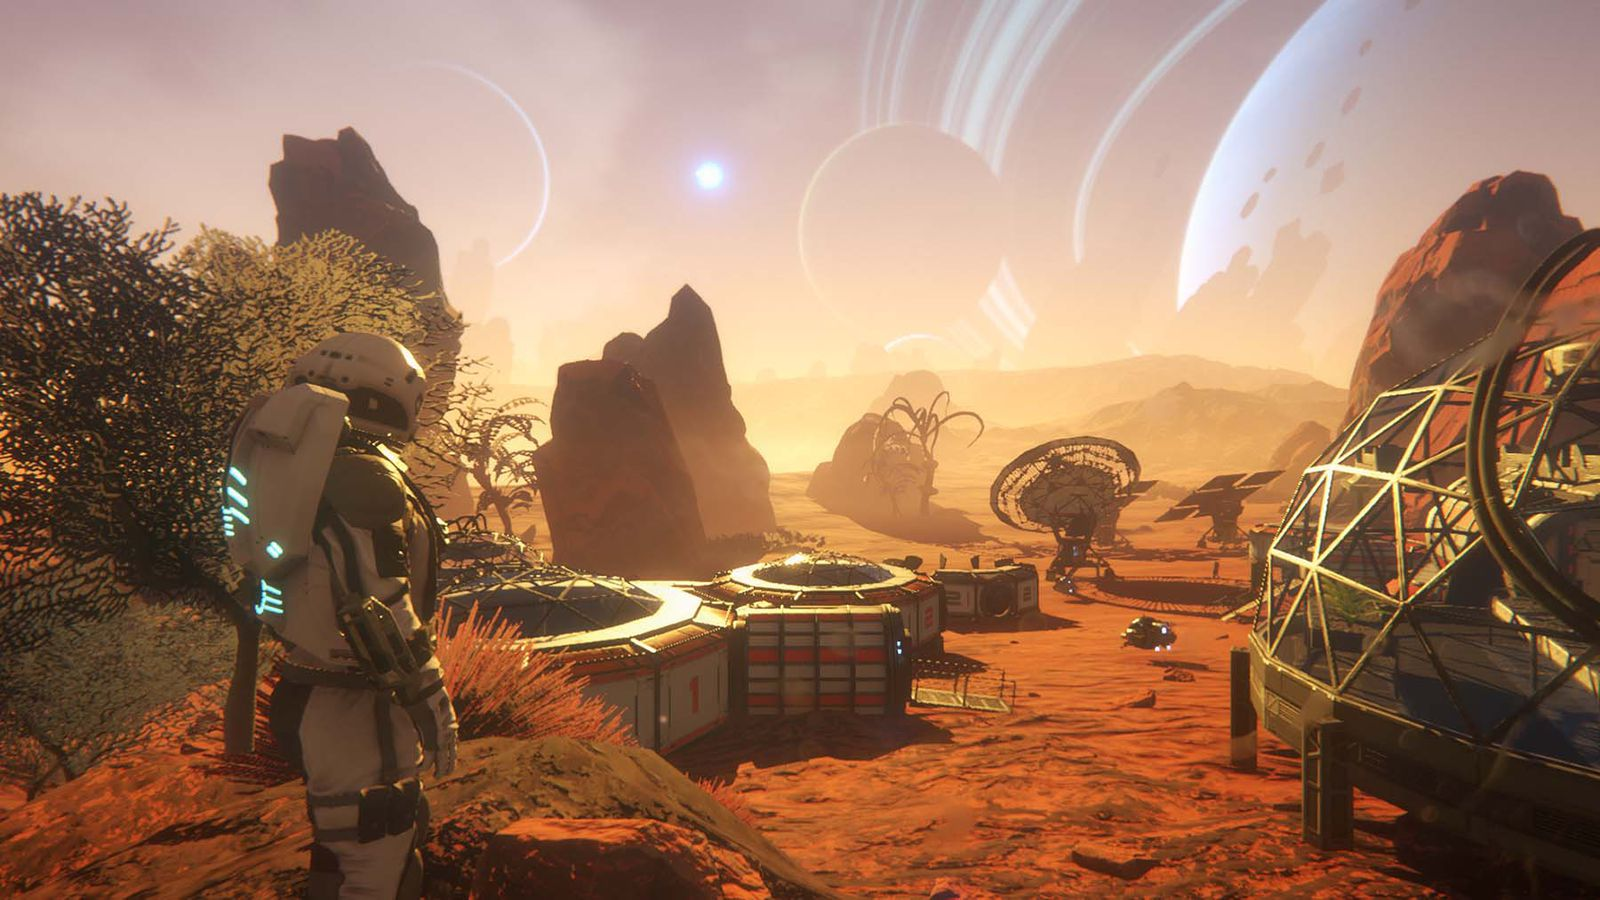 3d Action Game Wallpaper Multiplayer Survival Game Osiris New Dawn May Be Steam S